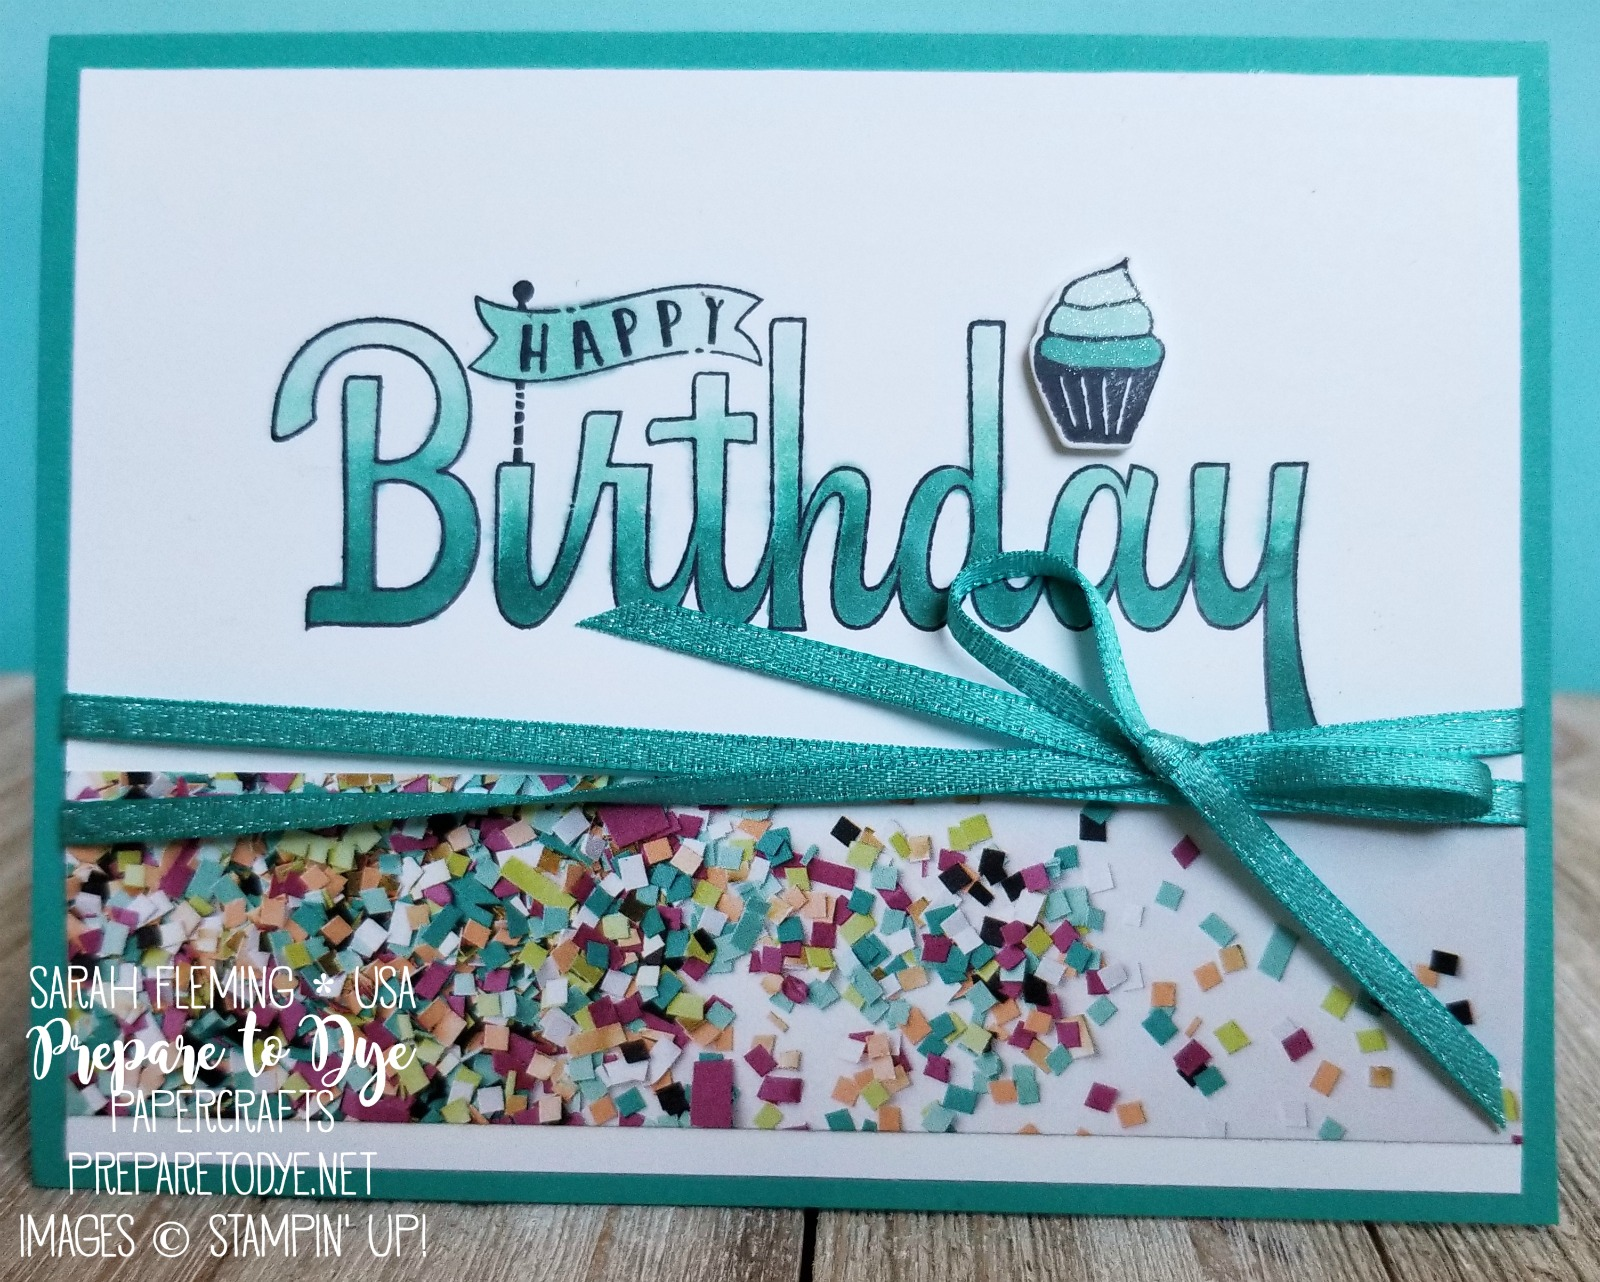 Stampin' Up! Birthday Wishes For You with Party Hat Birthday, Picture Perfect Birthday paper, and Sale-A-Bration Shimmer Ribbon and Stampin' Blends - Sarah Fleming - Prepare to Dye Papercrafts